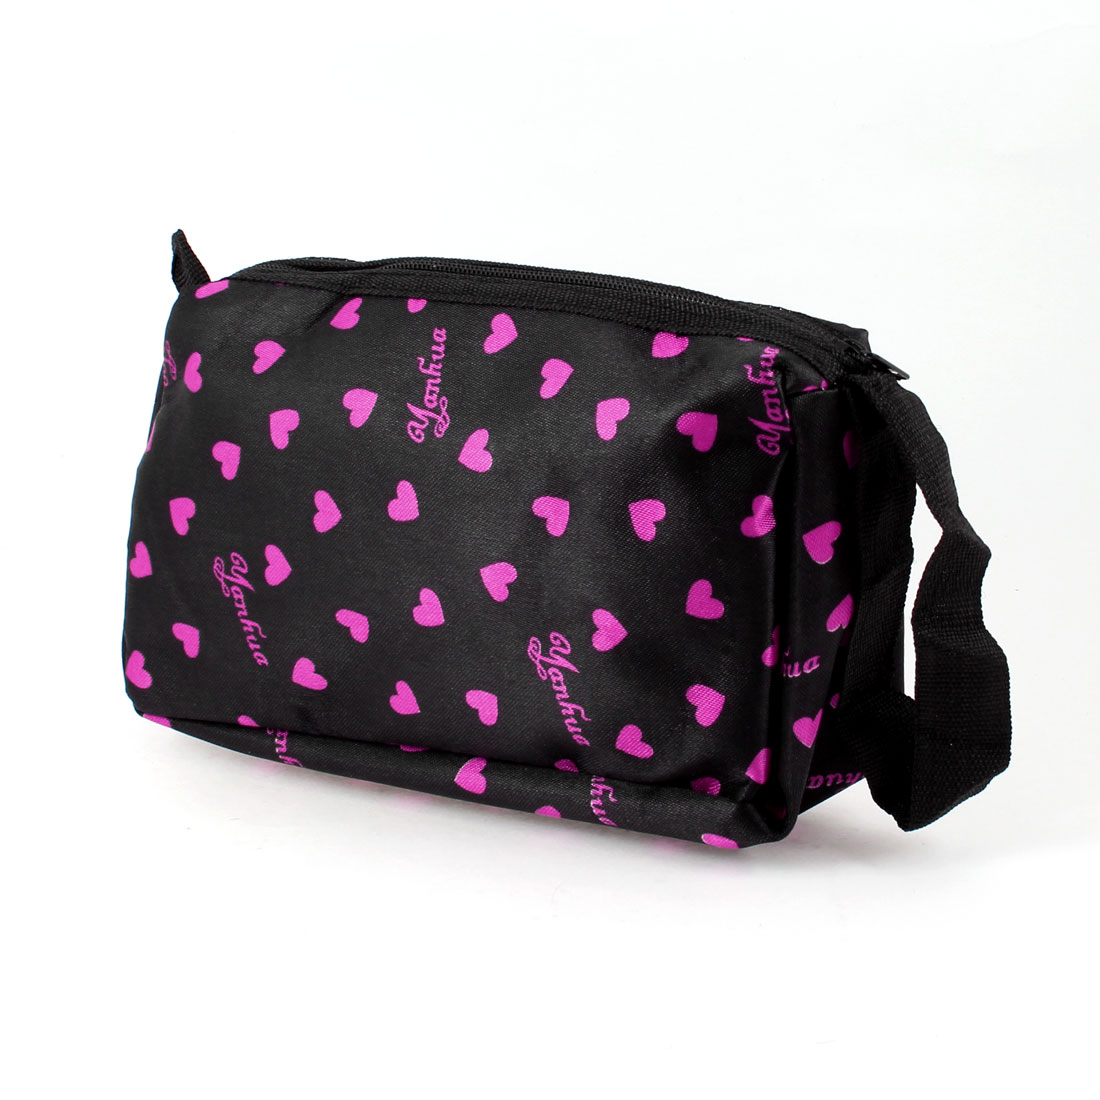 Women Zipper Closure Fuchsia Heart Pattern Cosmetic Pouch Bag Black w Mirror